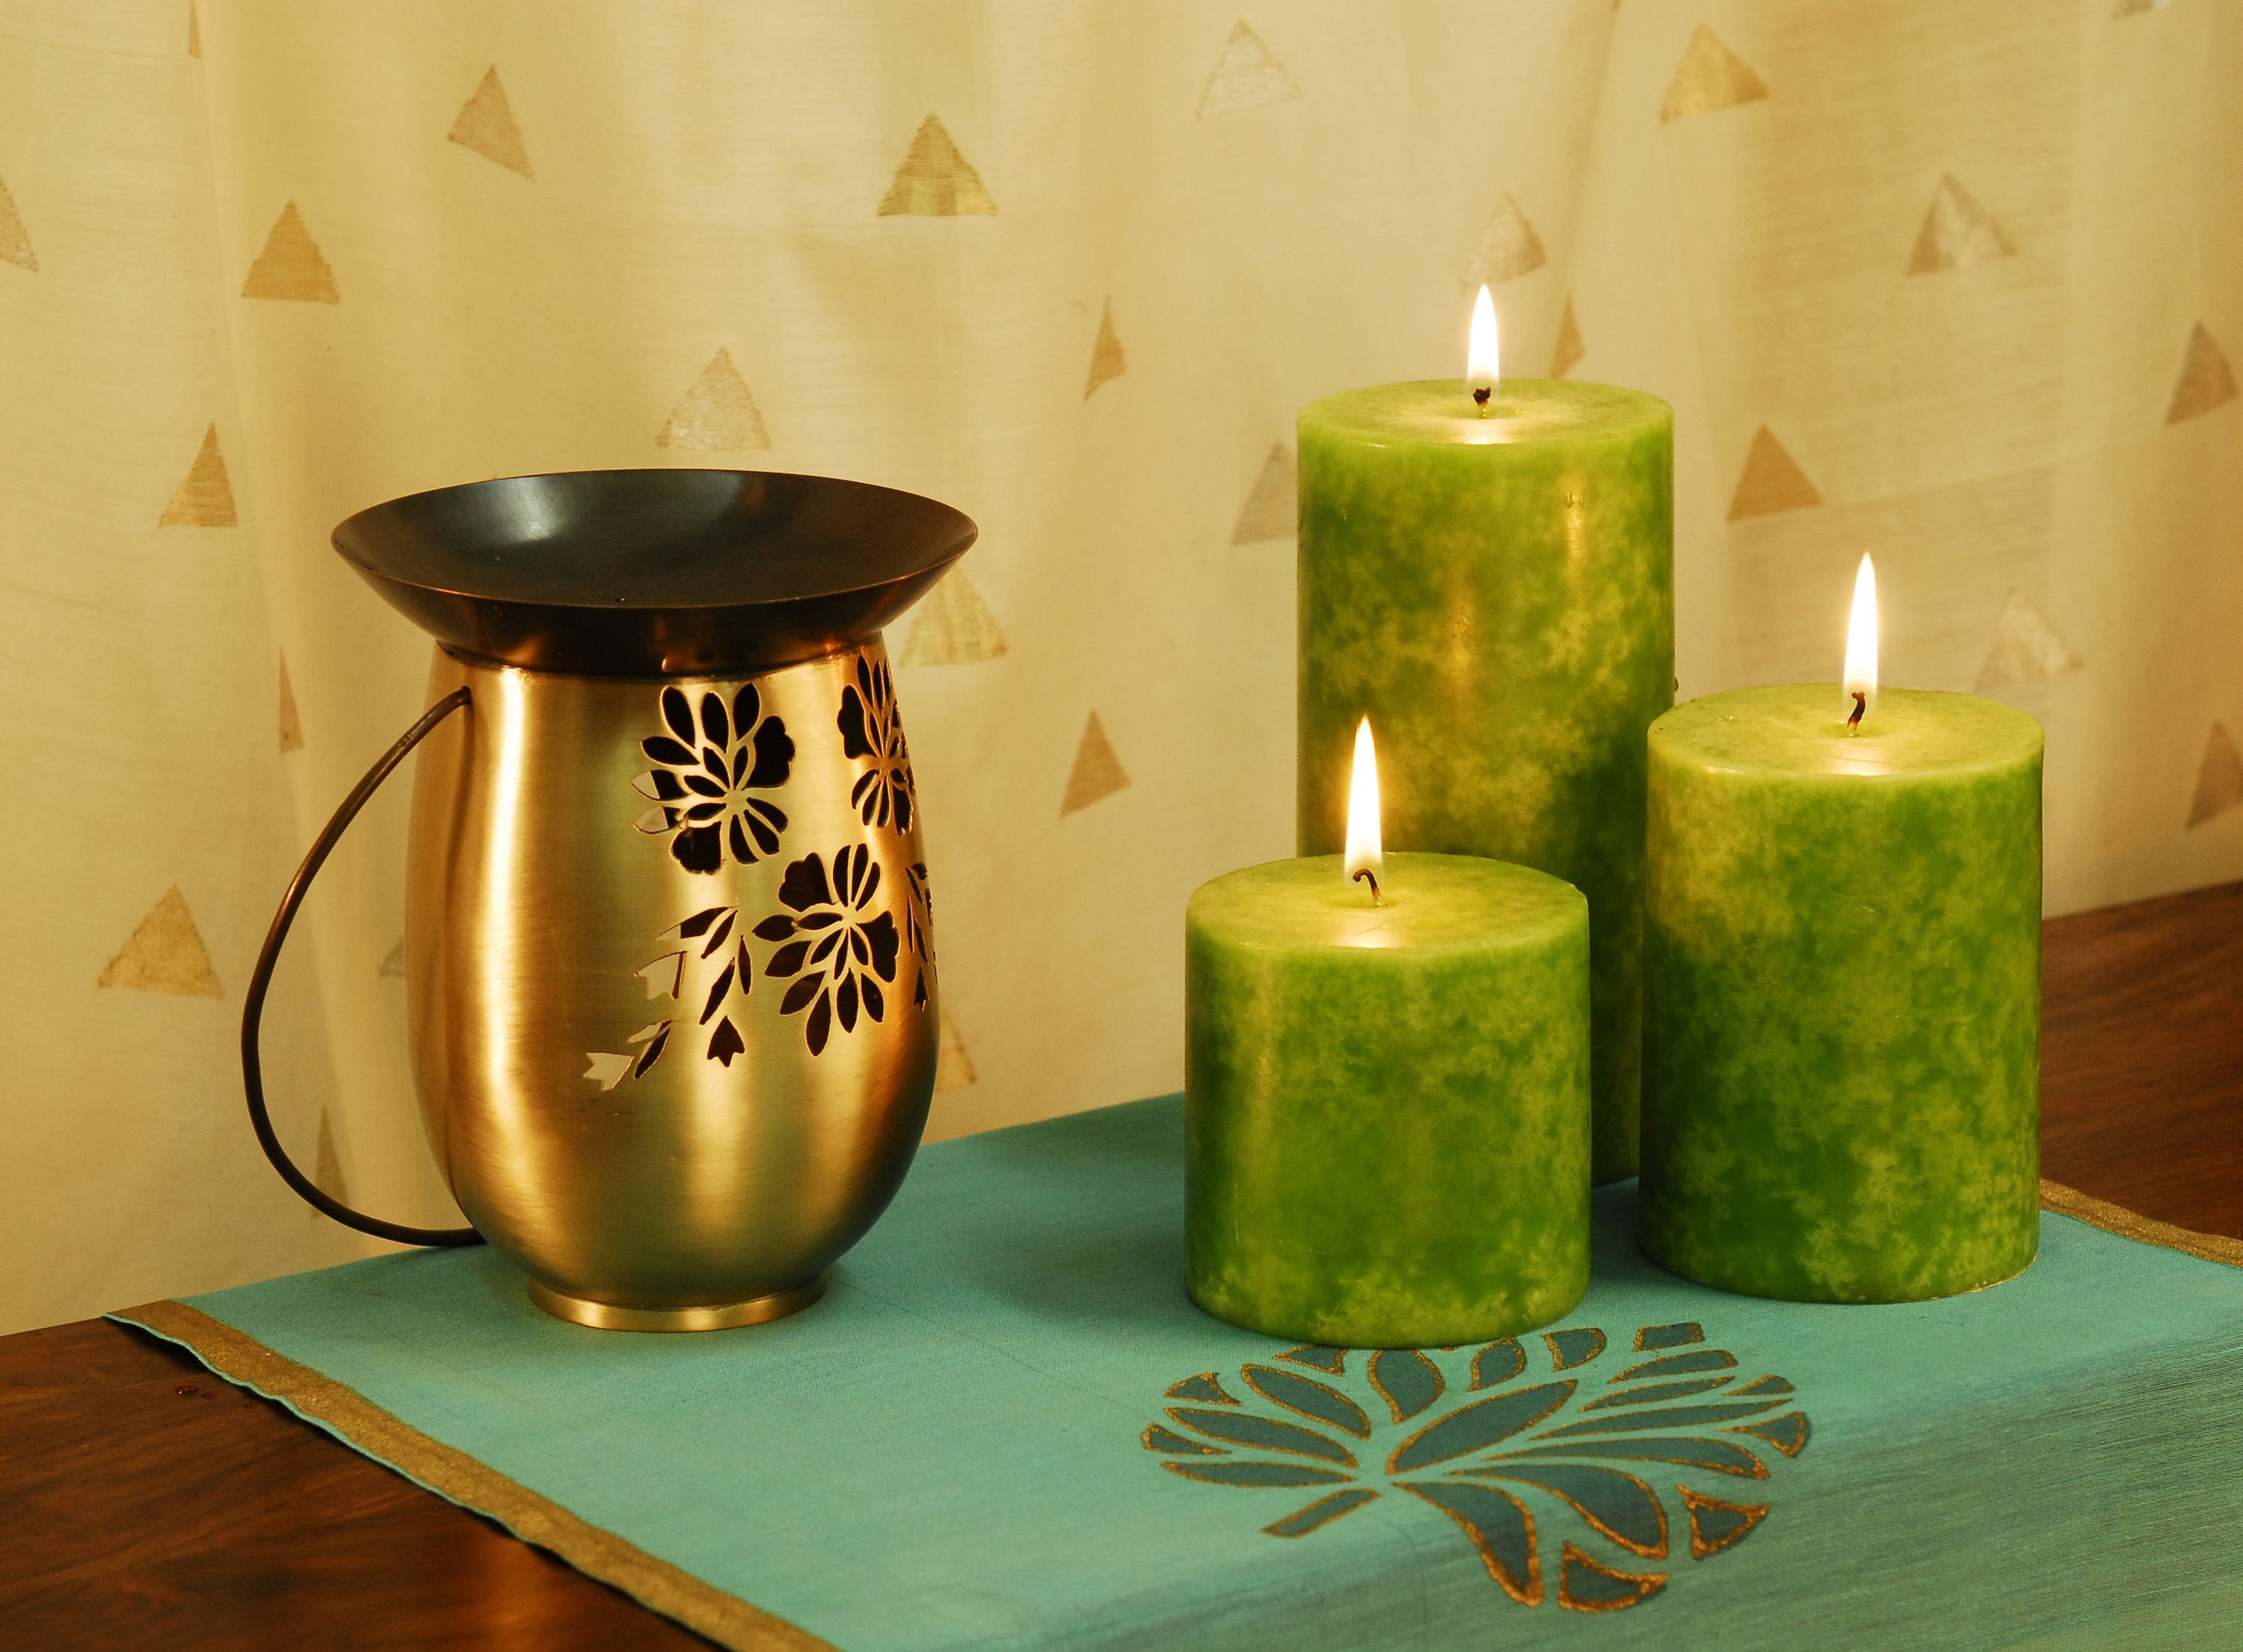 Evelyne home interiors interior and exterior decoration velas -  Pillar Candles Light Votive Ambiance Gifting Ideas Decor